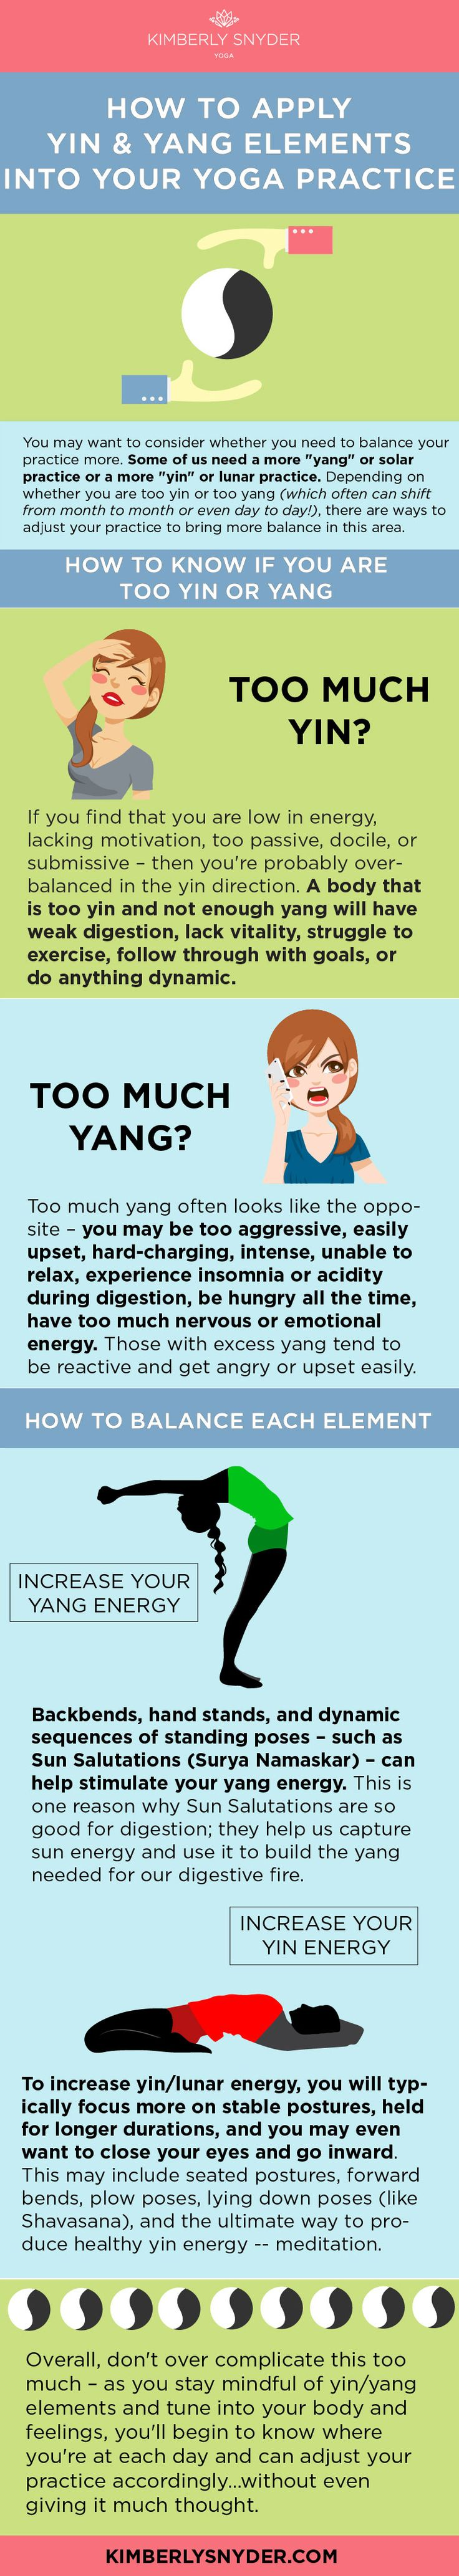 How to balance yin and yang with yoga. This is so interesting!